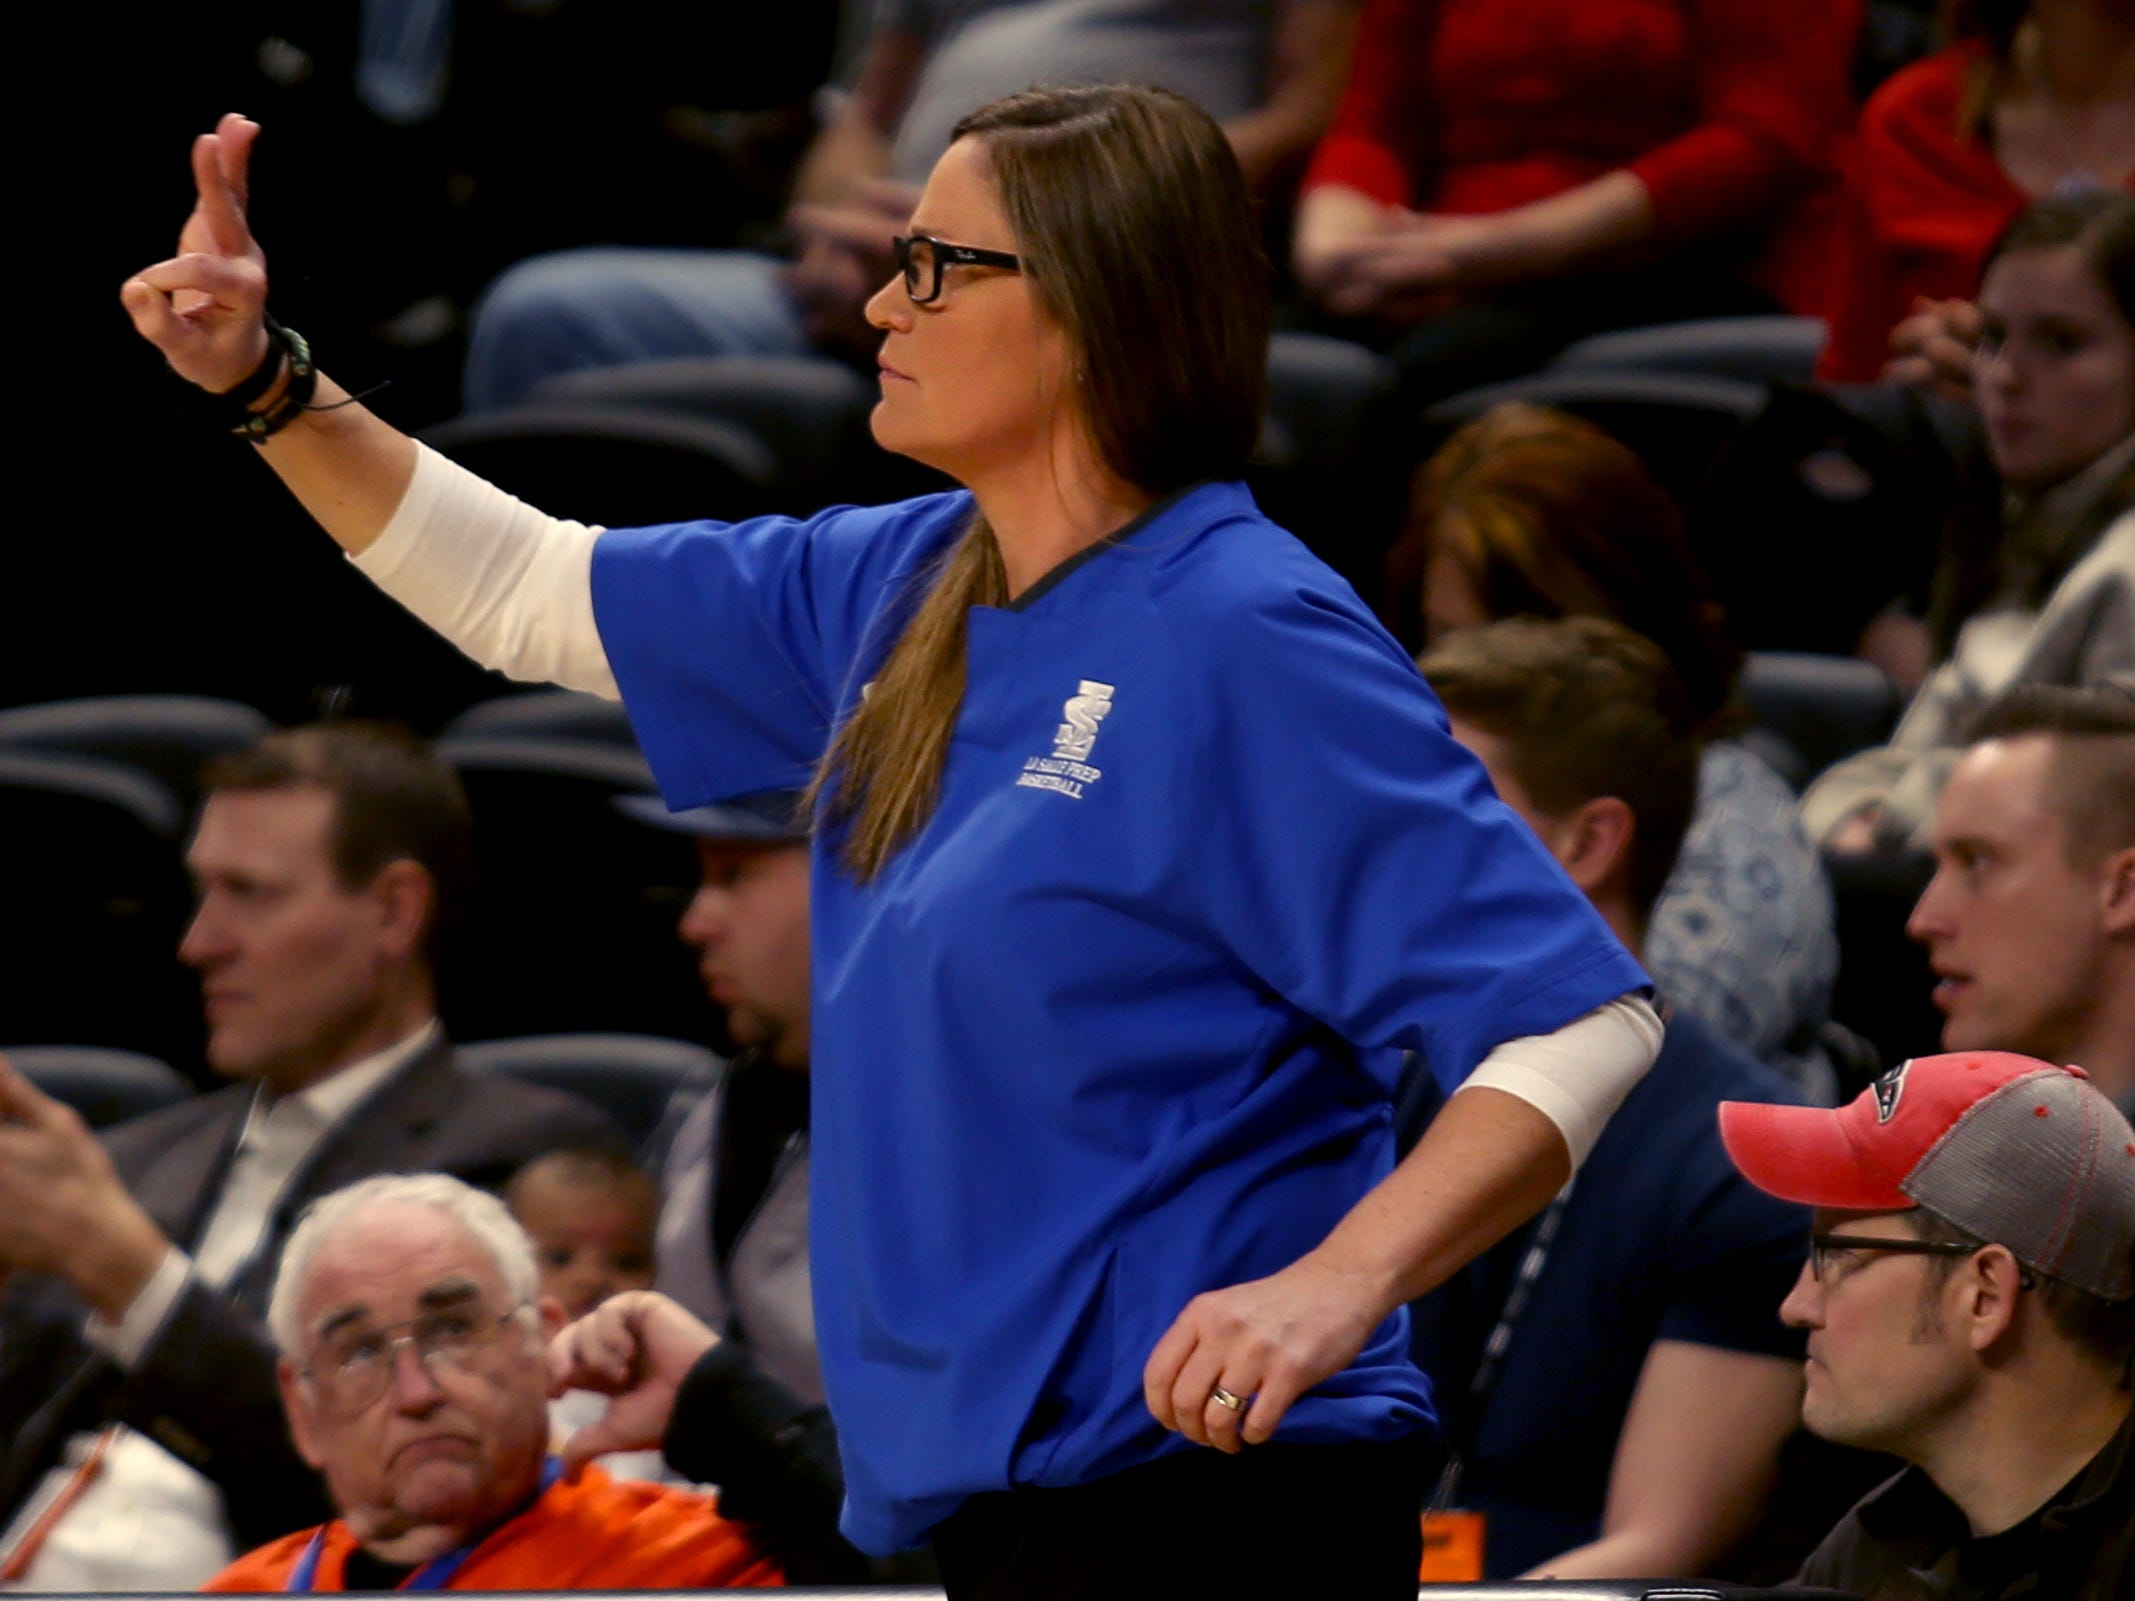 La Salle Prep head coach Kelli Wedin gives a signal to her team in the first half of the La Salle Prep vs. Silverton girls basketball game in the OSAA Class 5A quarterfinals at Oregon State University in Corvallis on Thursday, March 7, 2019. La Salle Prep won the game 57-46.